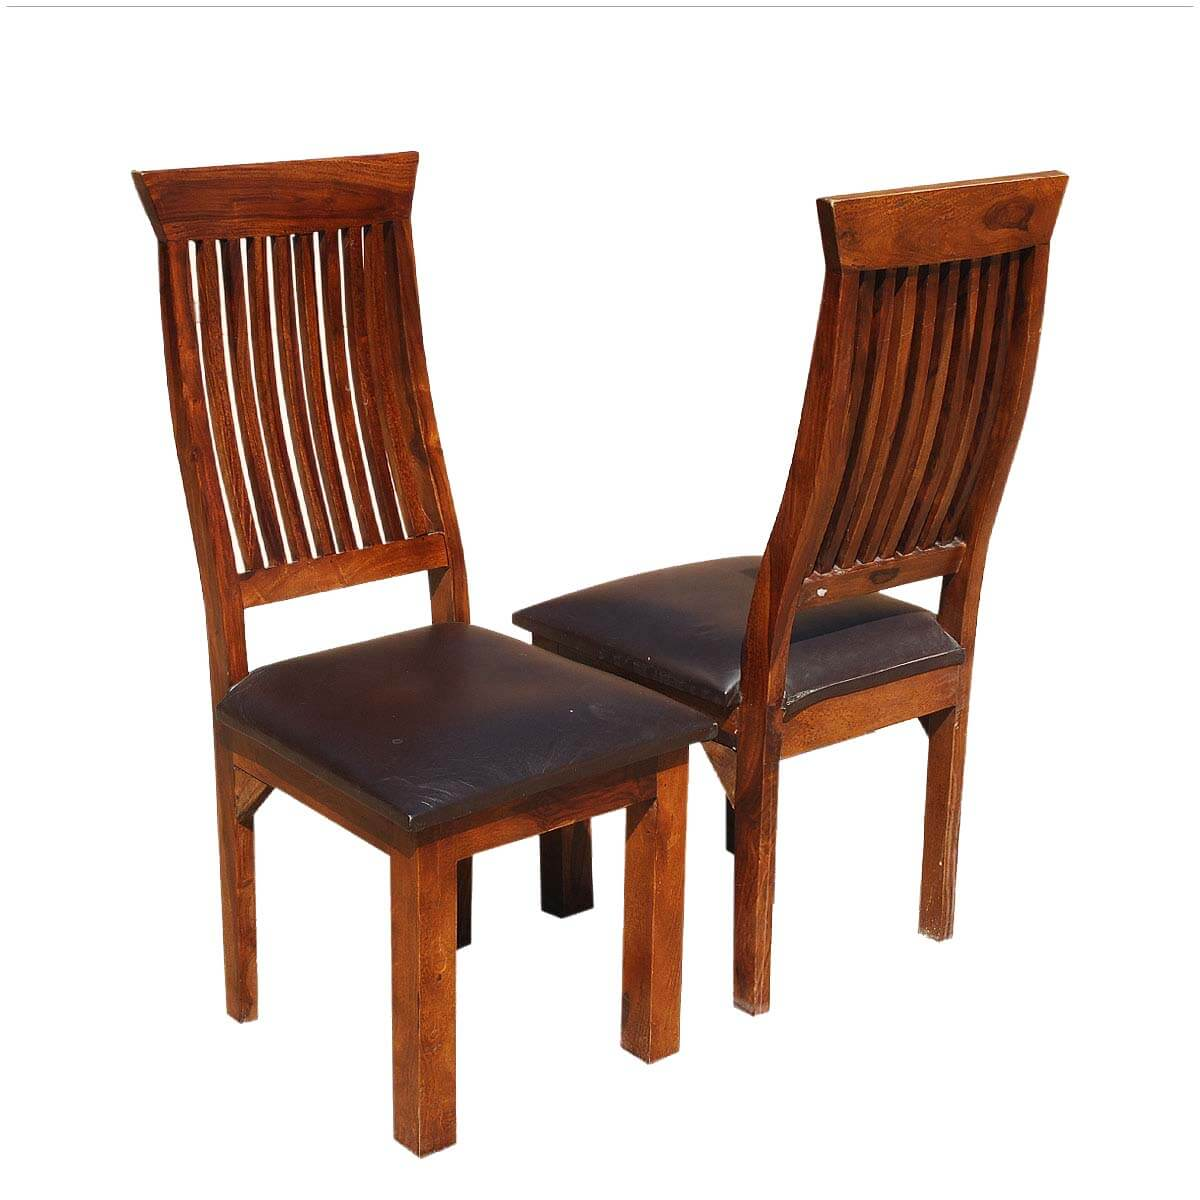 ergonomic chair settings rattan rocking ikea solid wood and leather dining set of 2